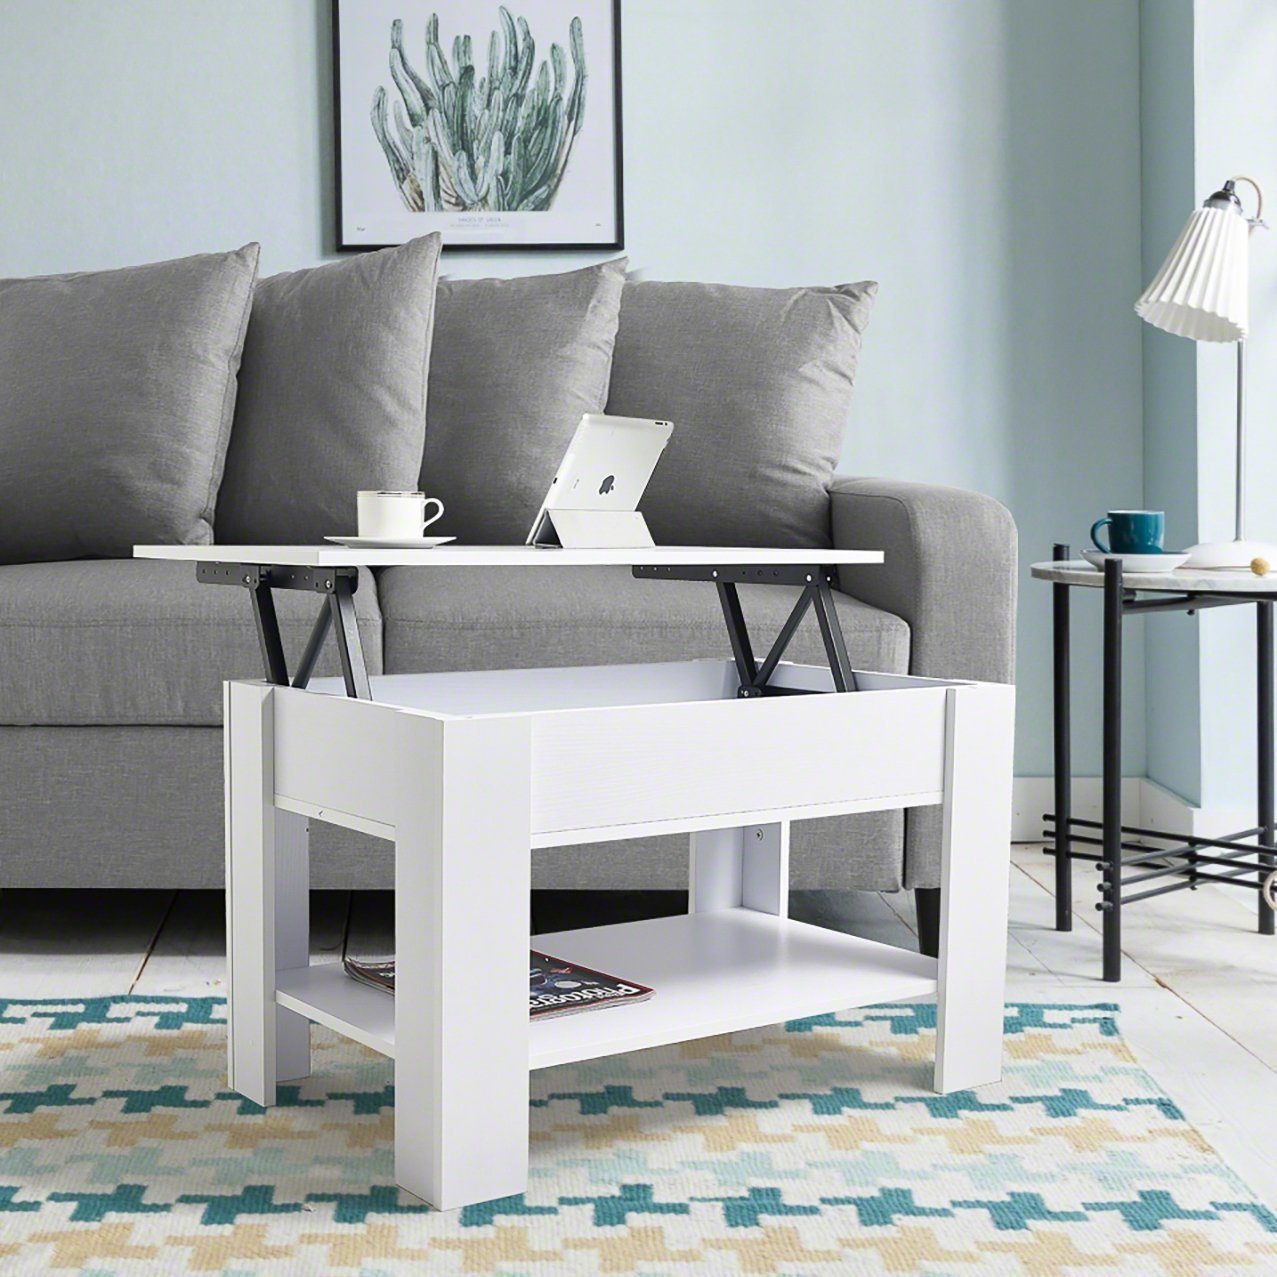 White Lift Up Top Coffee Table With Storage Shelf